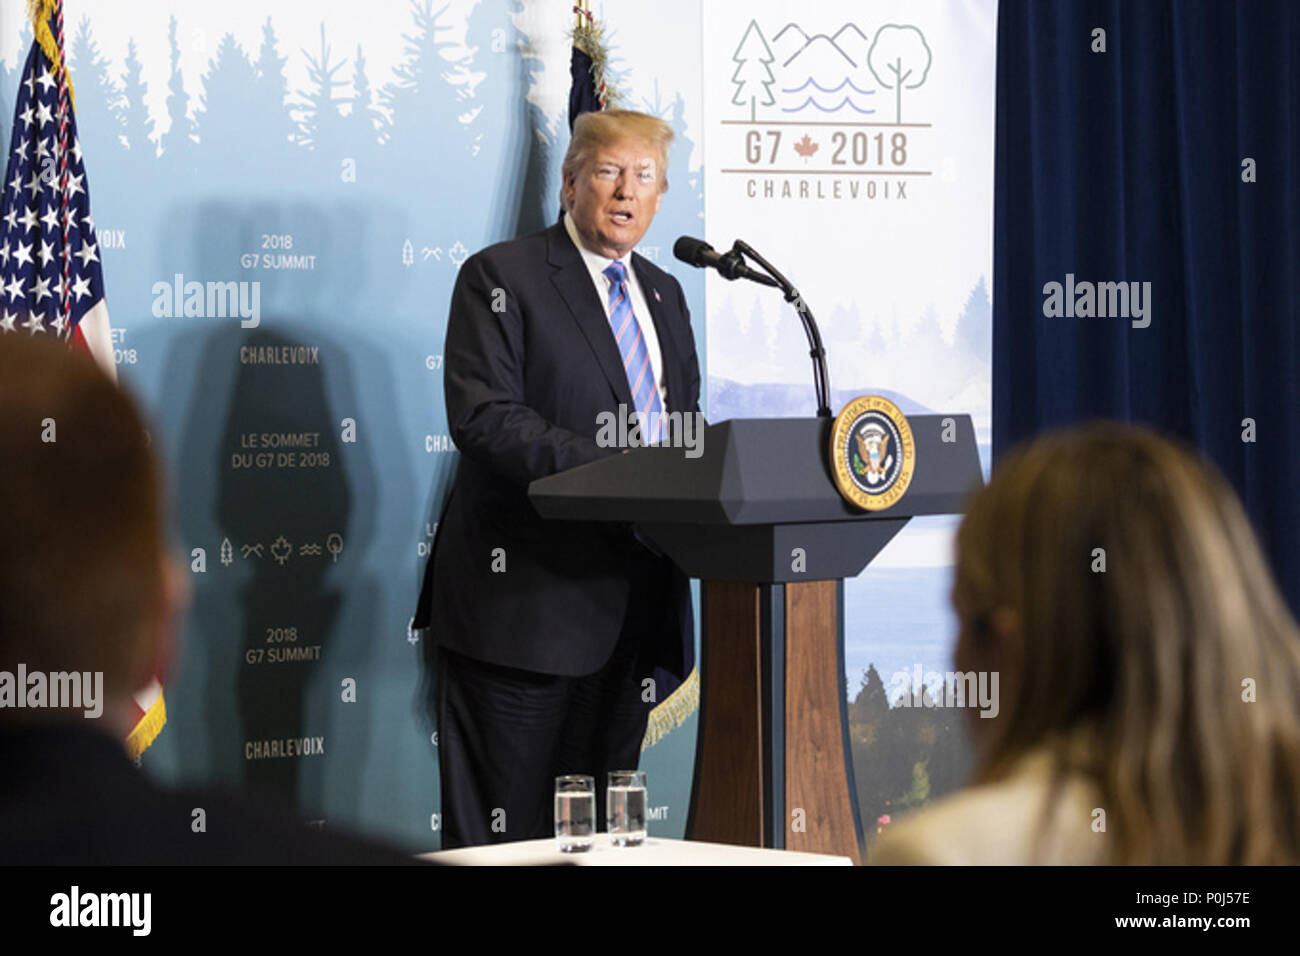 LA MALBAIE , QC - JUNE 08 & 09: President Donald J. Trump addresses the media on Saturday, June 9, 2018, during a G7 news conference at the Fairmont Le Manoir Richelieu in Charlevoix, Quebec, Canada  People:  President Donald Trump Credit: Storms Media Group/Alamy Live News - Stock Image